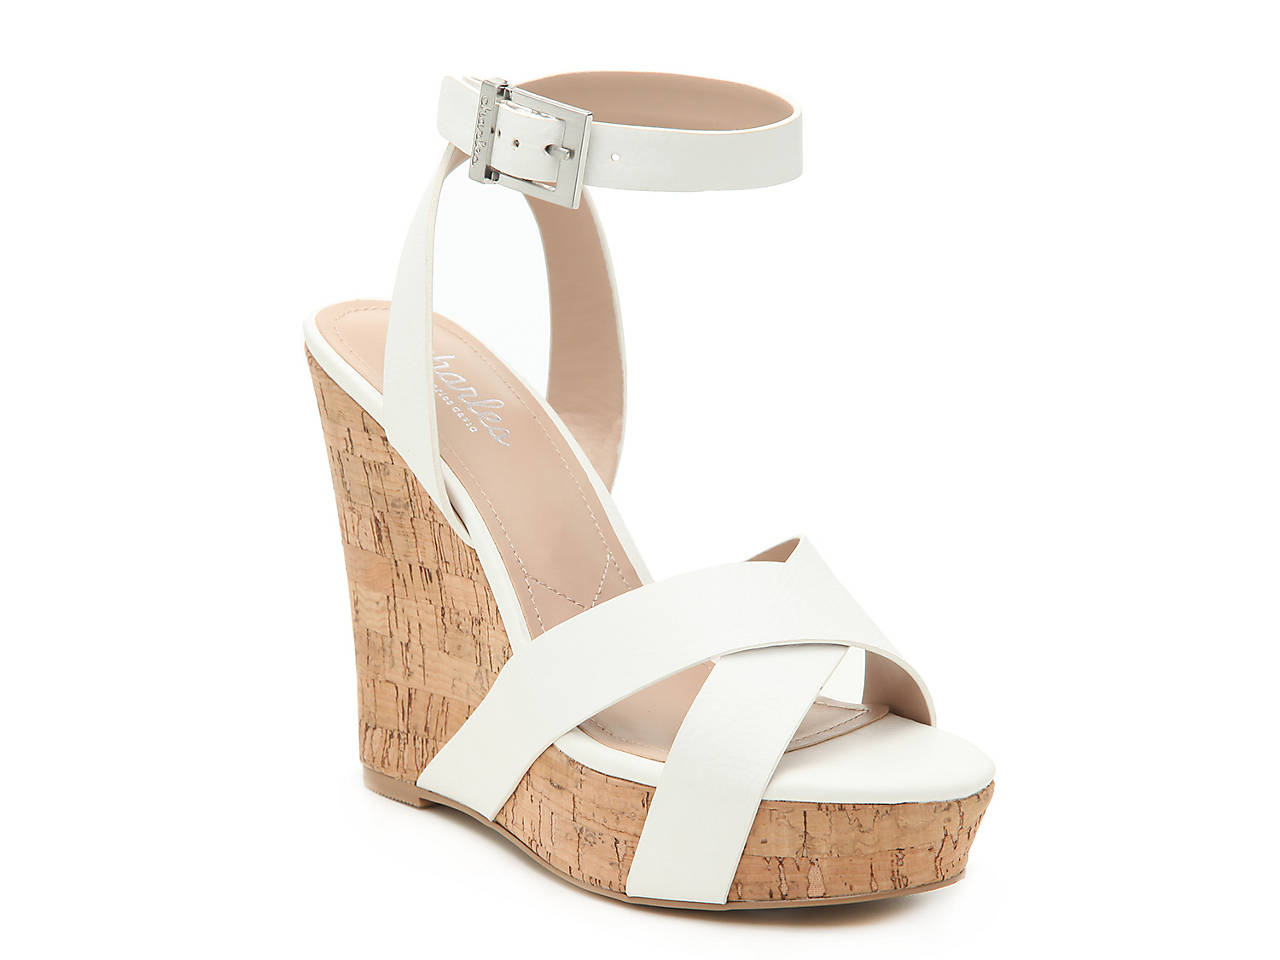 941b25b1294 Charles by Charles David Aleck Wedge Sandal Women s Shoes